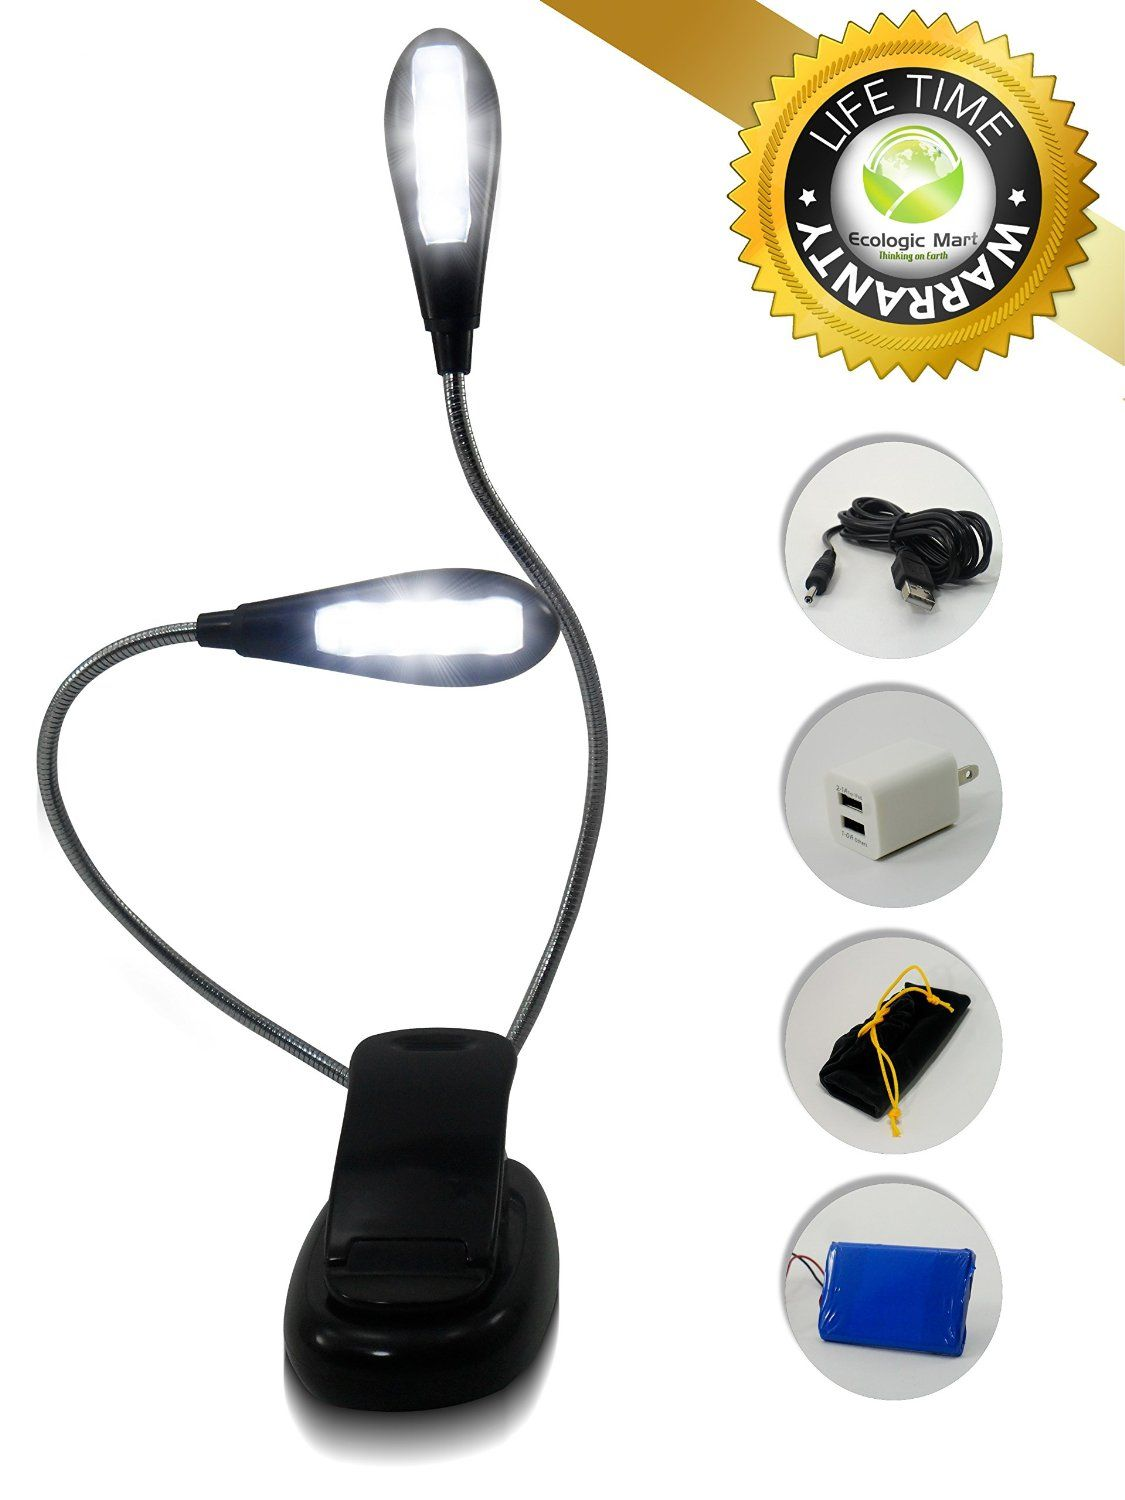 Best Book Light Stunning Best Book Lights For Reading In Bed  The 5 Best Book Lights For Review